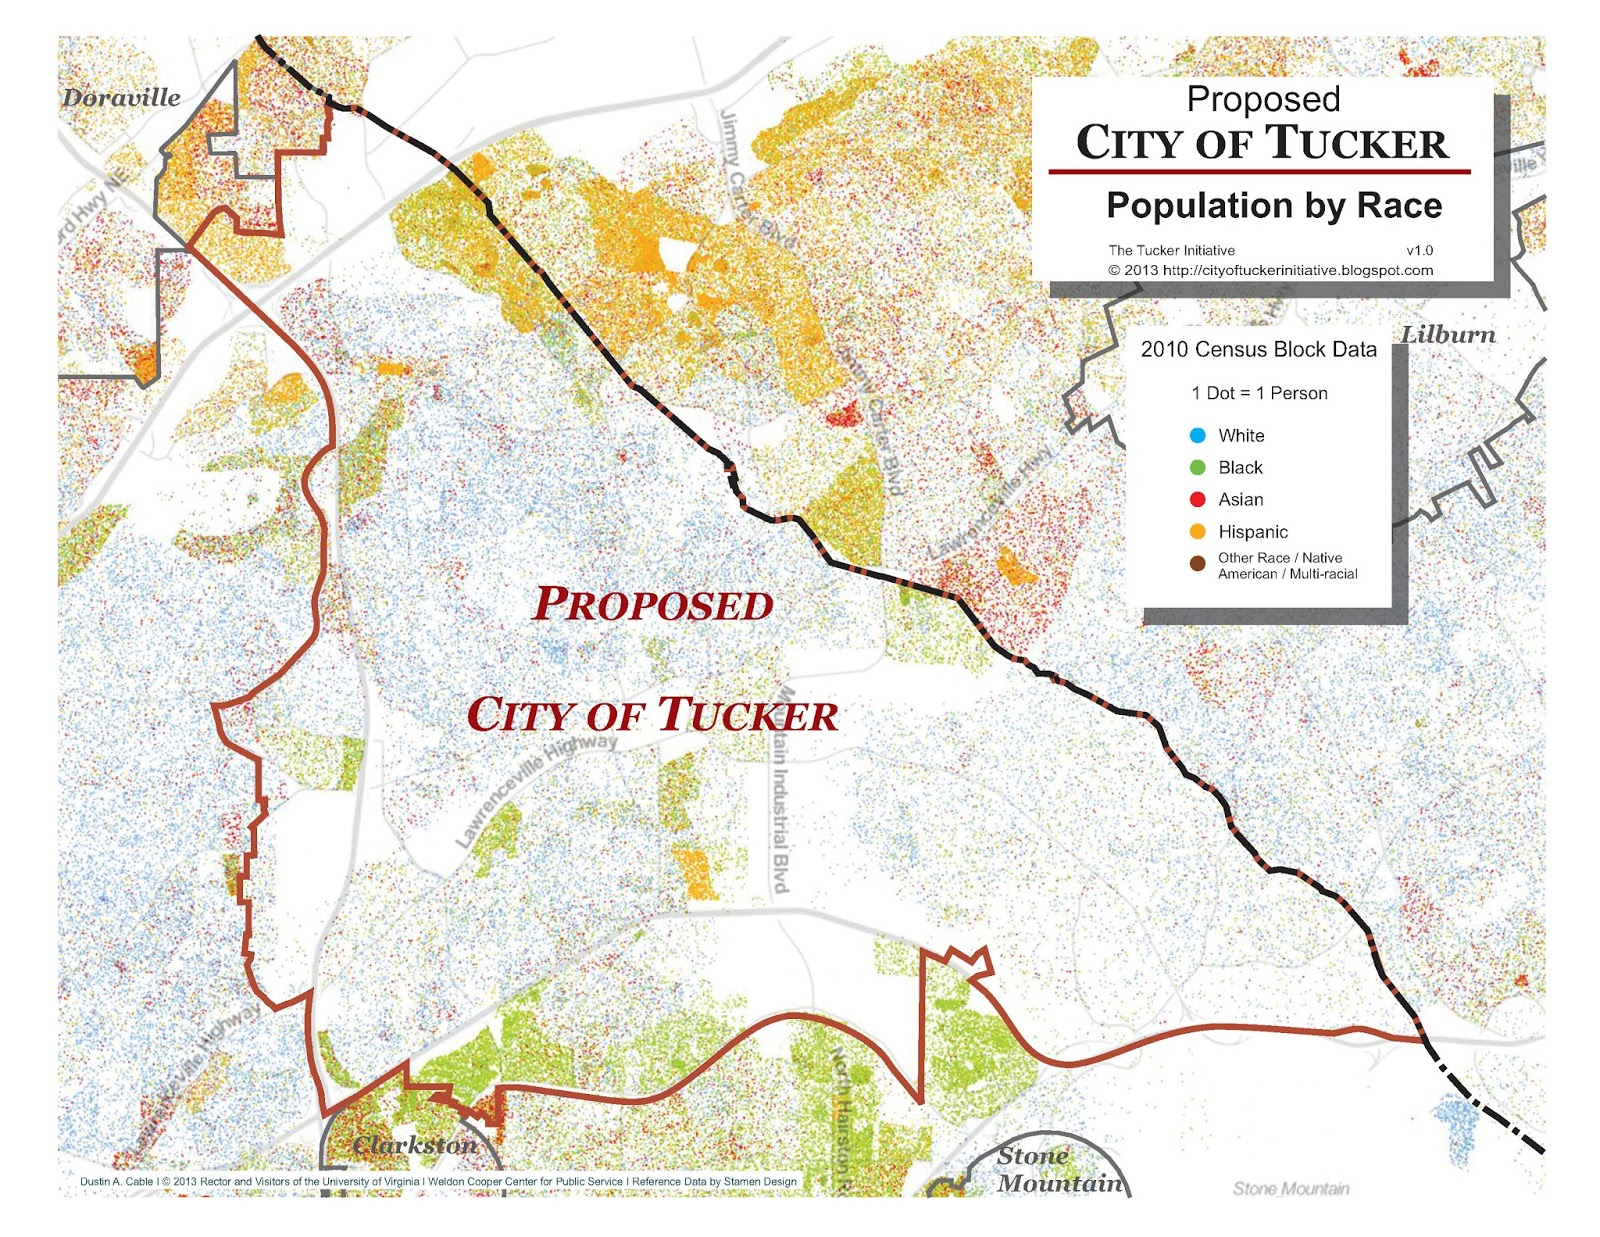 the proposed city of tucker population by race